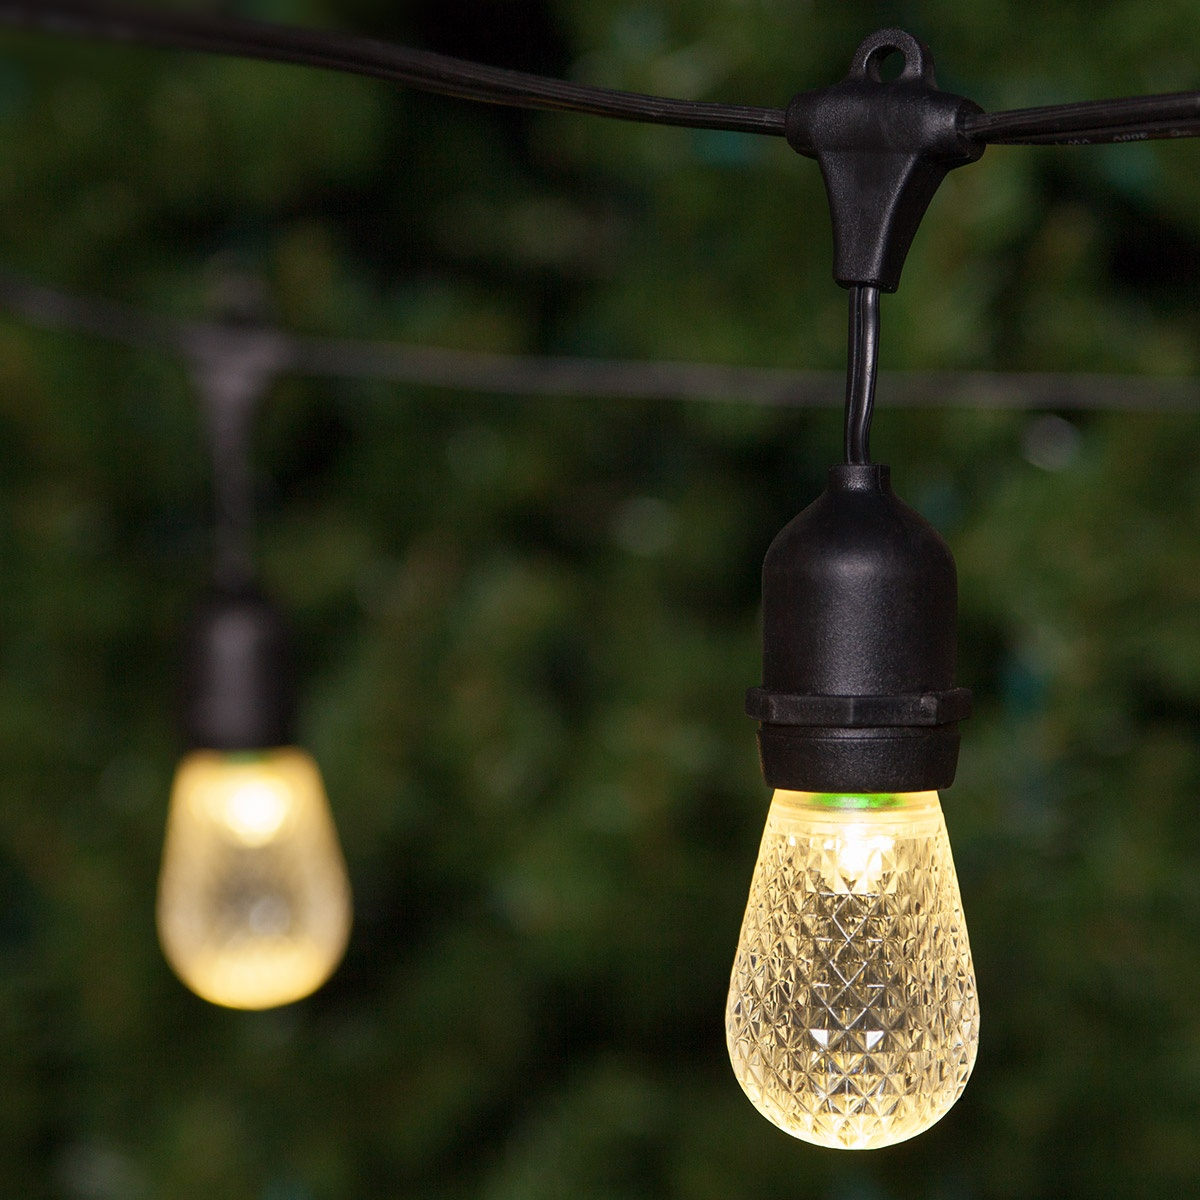 outdoor led patio lights cafe 54 commercial patio string with 24 suspended s14 warm white led outdoor lights lights